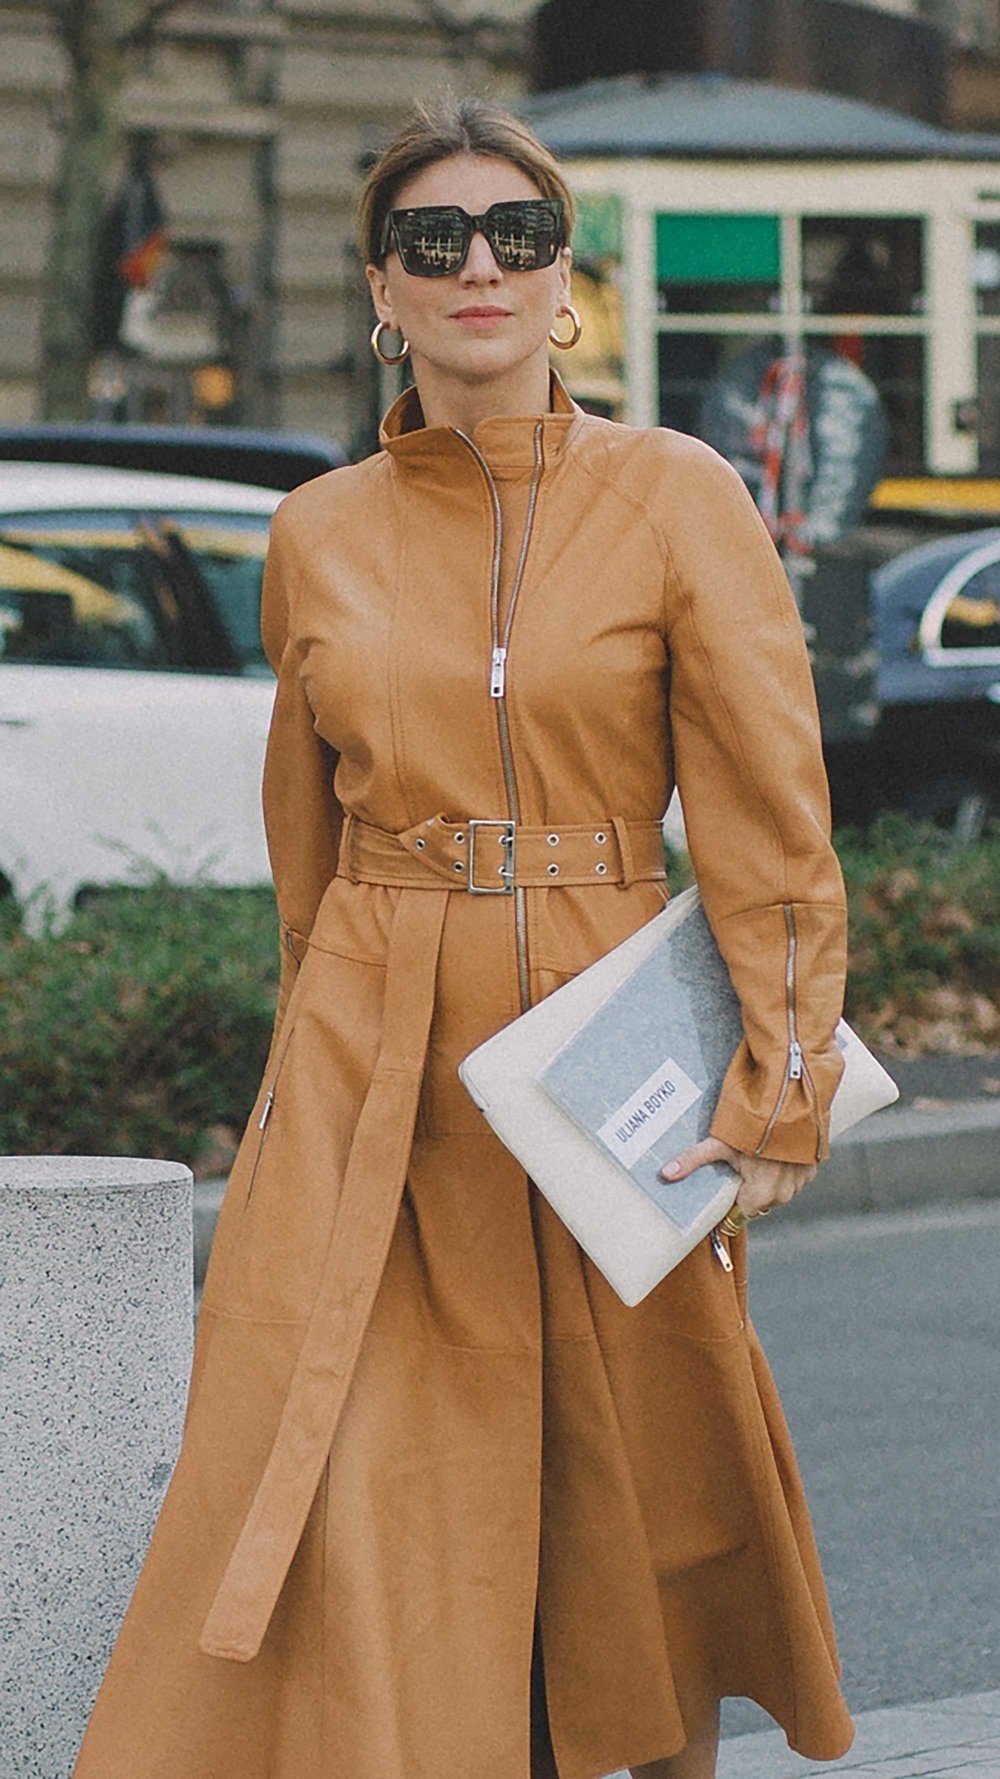 est outfits of Milan Fashion Week street style day two MFW FW19 43.jpg